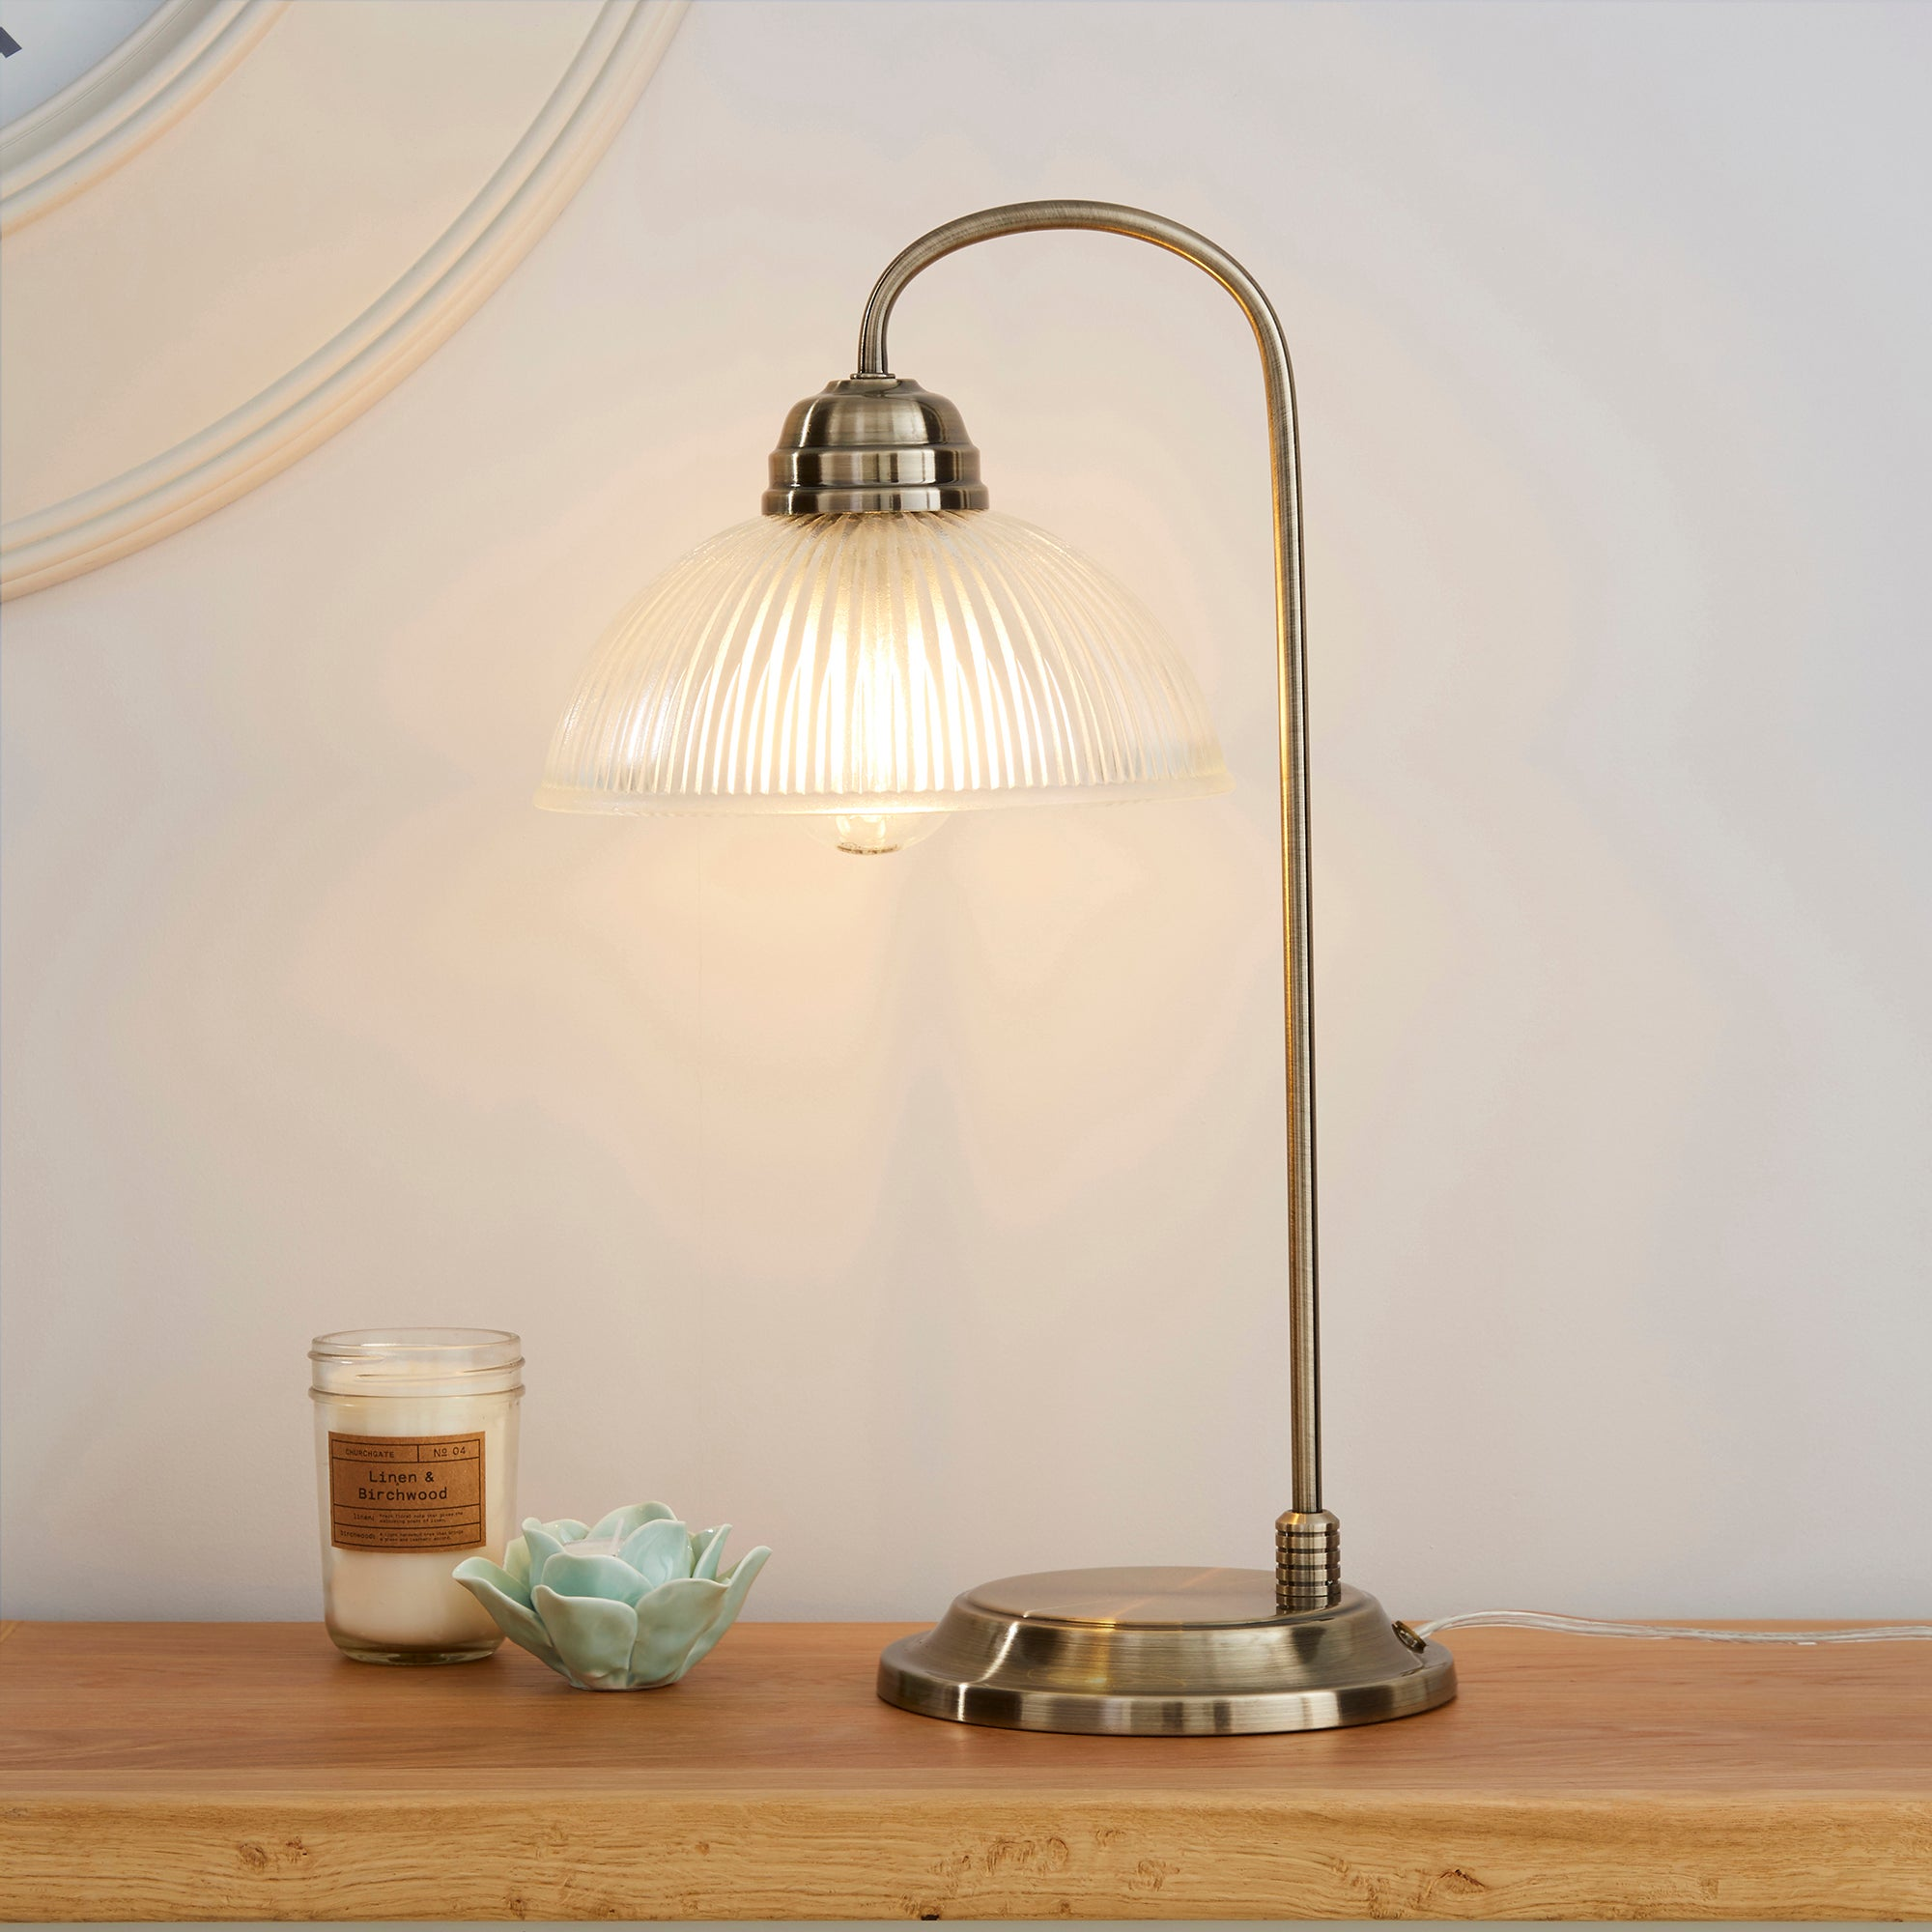 Henry Antique Brass Table Lamp Antique (Brass)